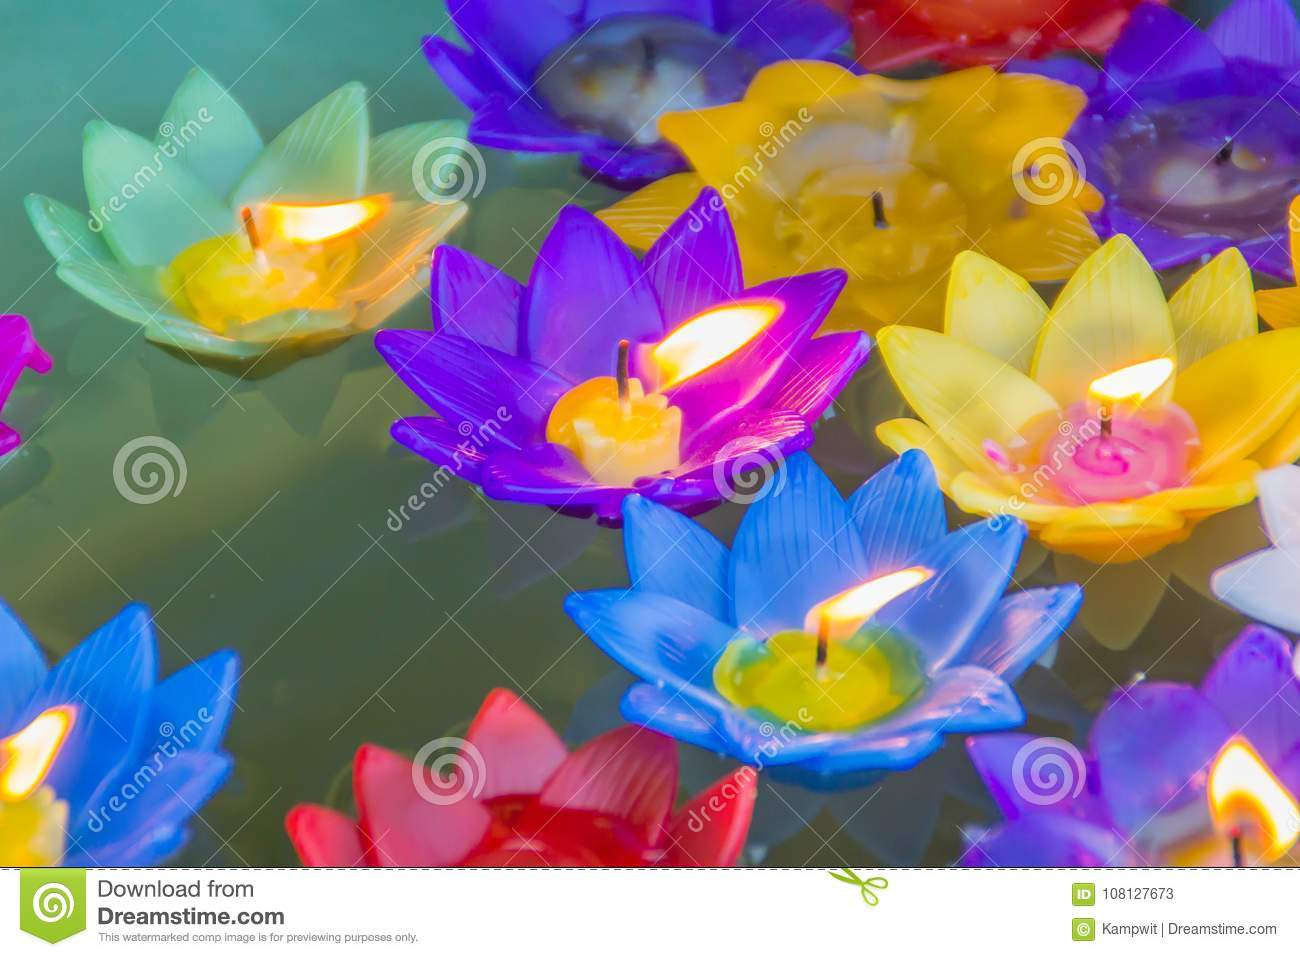 Colorful Lotus Flower With Burning Candles Are Floating On The Water